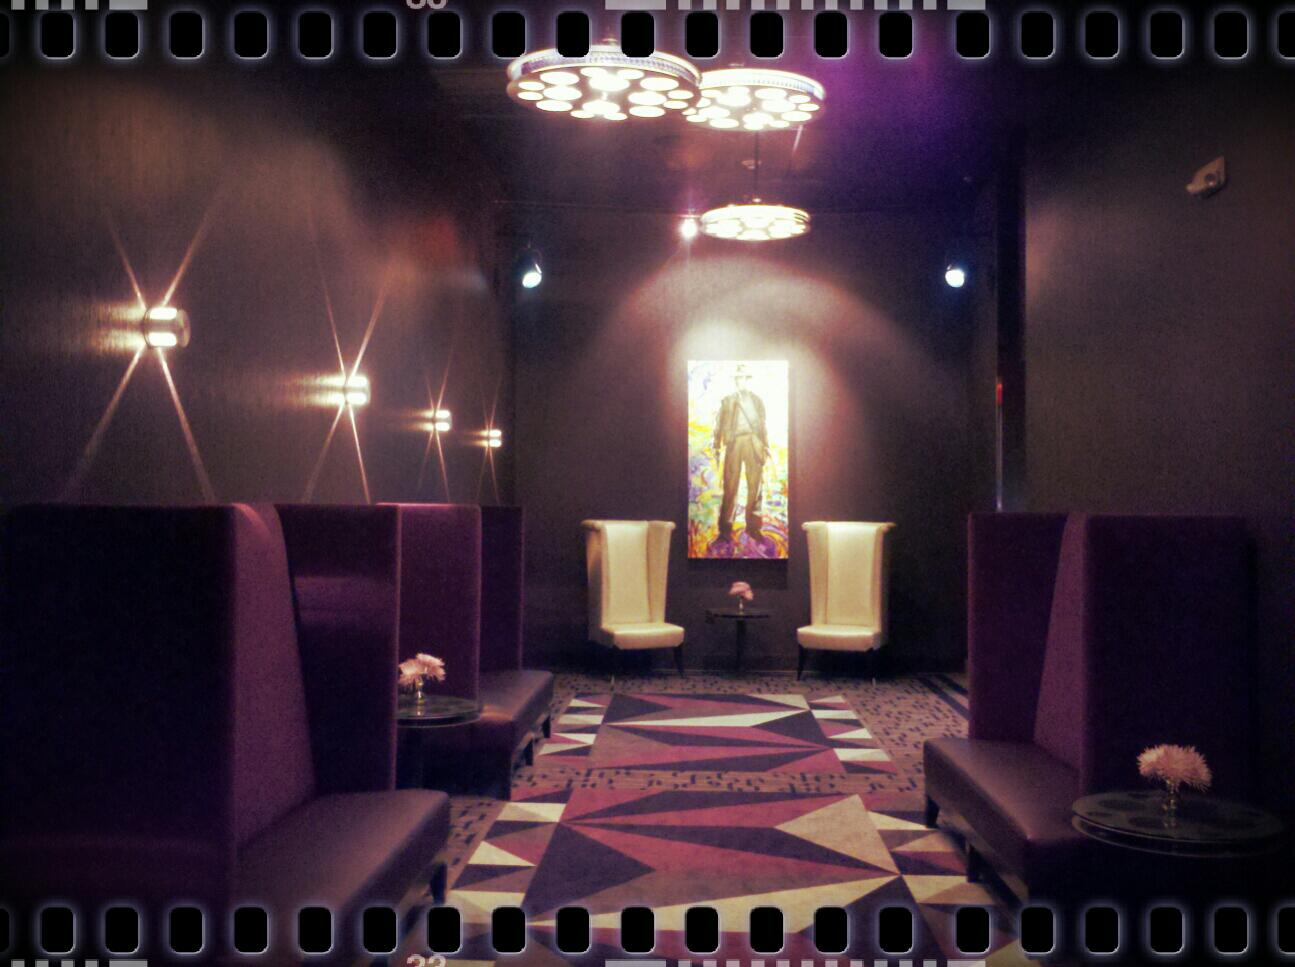 Movie Lounge, Fort Smith AR